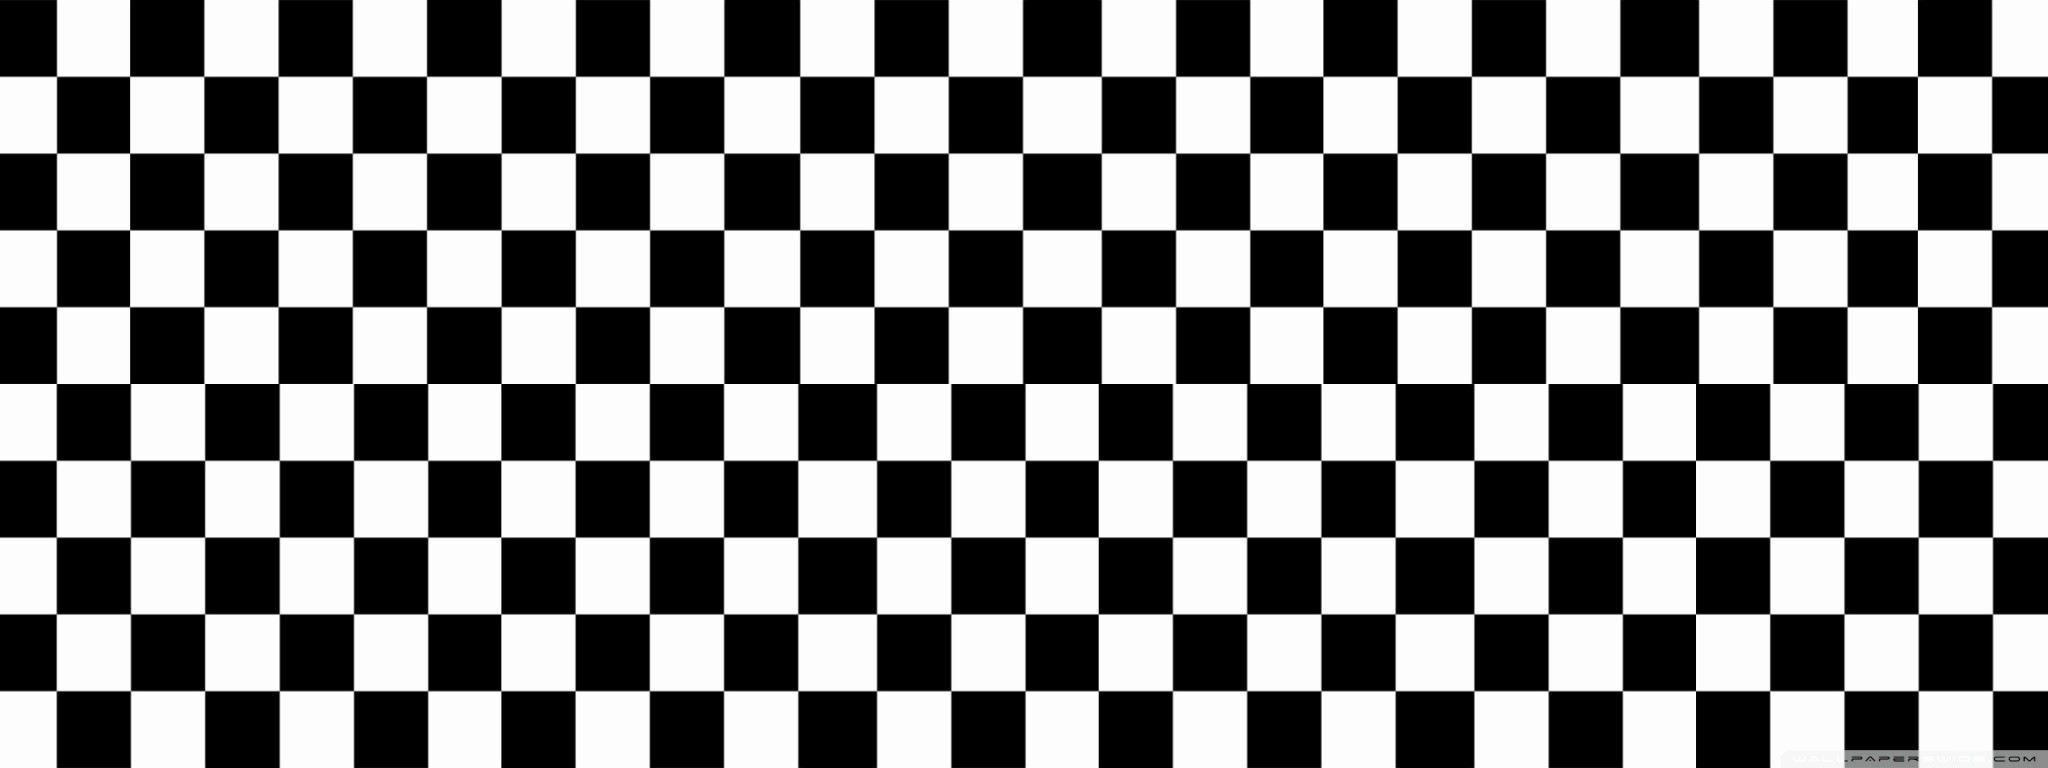 Pictures Of A Checker Board Fresh Checkerboard 4k Hd Desktop Wallpaper for • Wide & Ultra